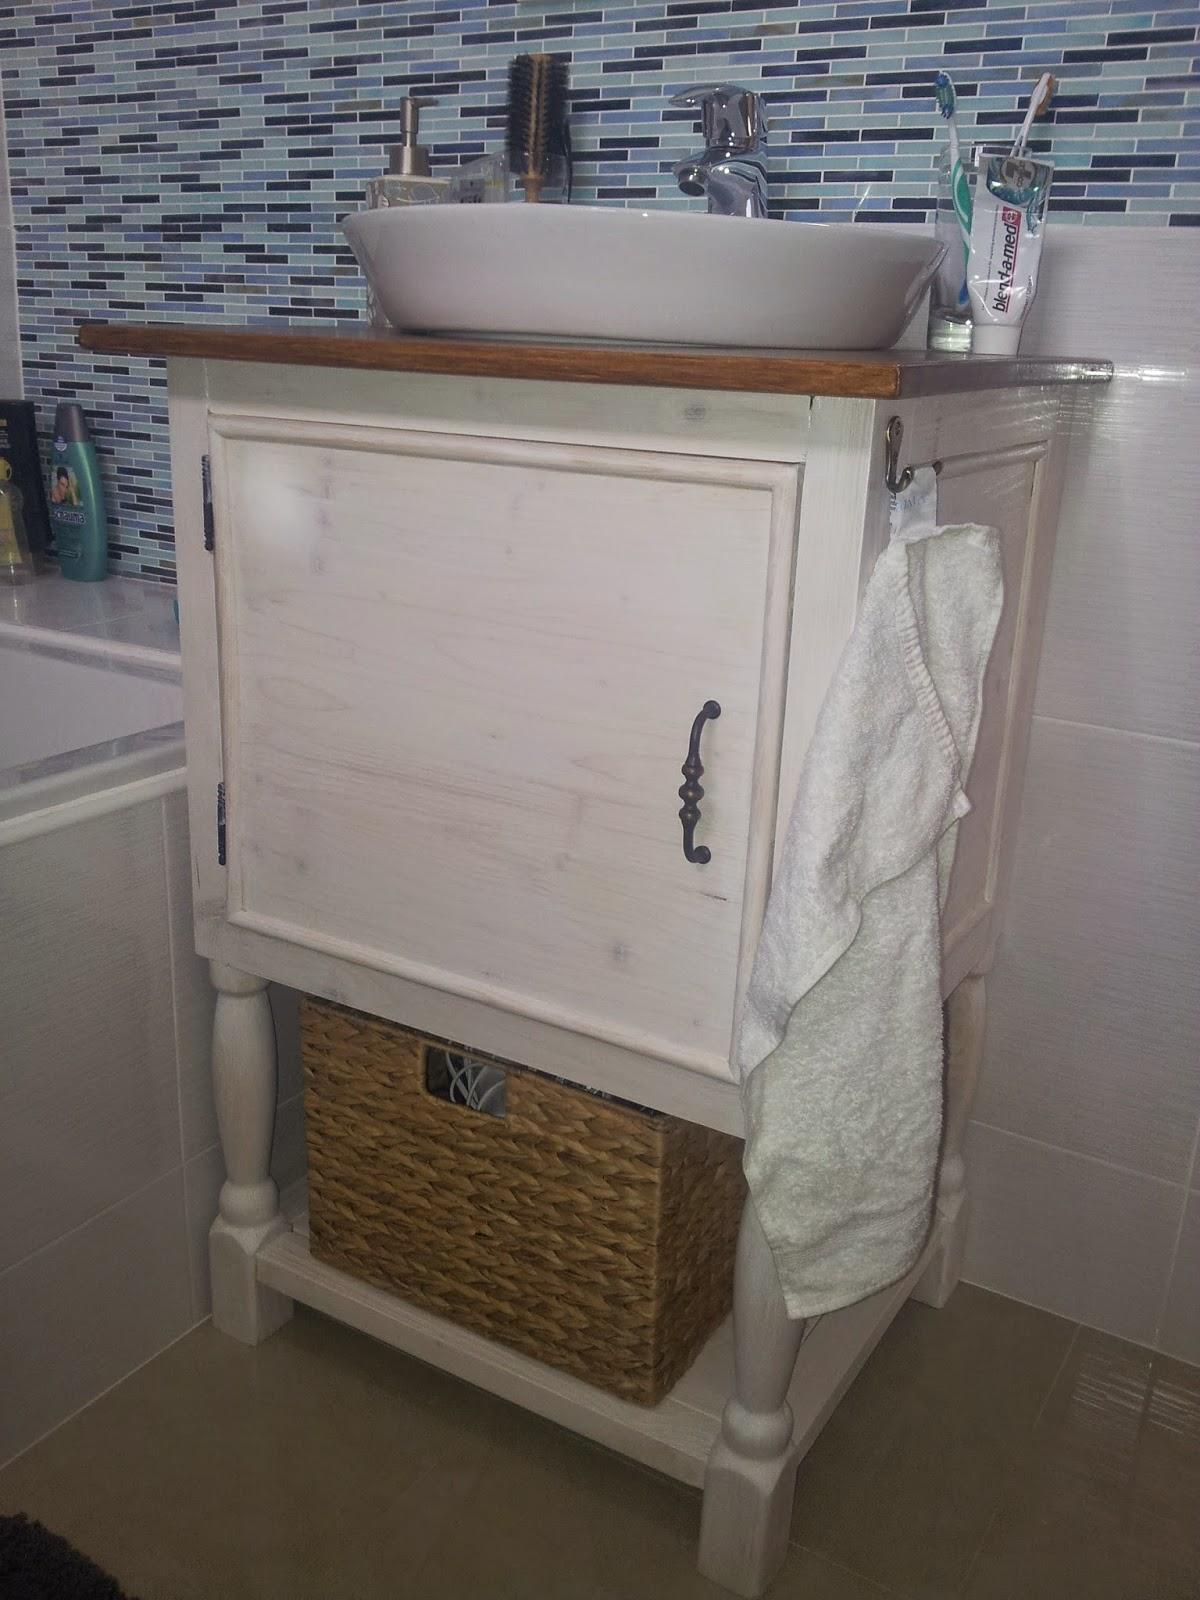 Yet another Pottery Barn inspired bathroom vanity and Bathroom